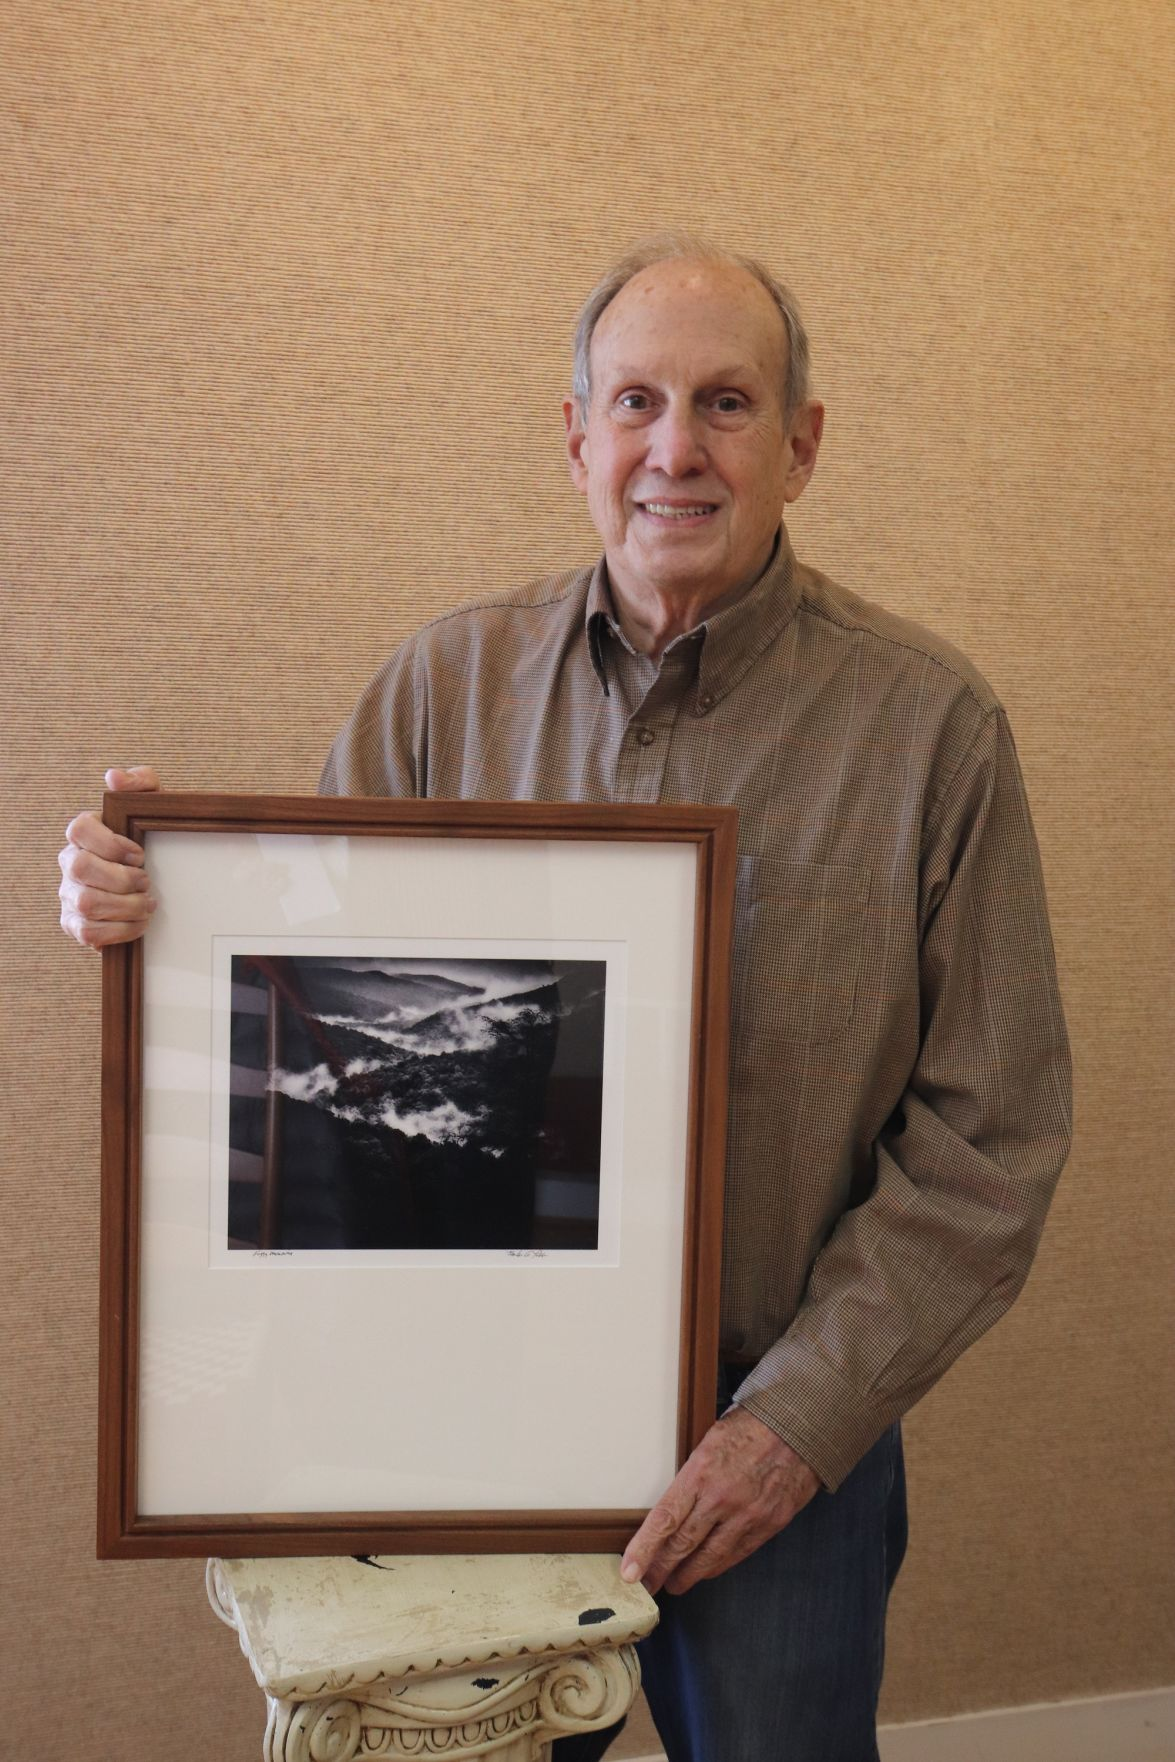 Photography exhibit opens Feb. 4 at TAC